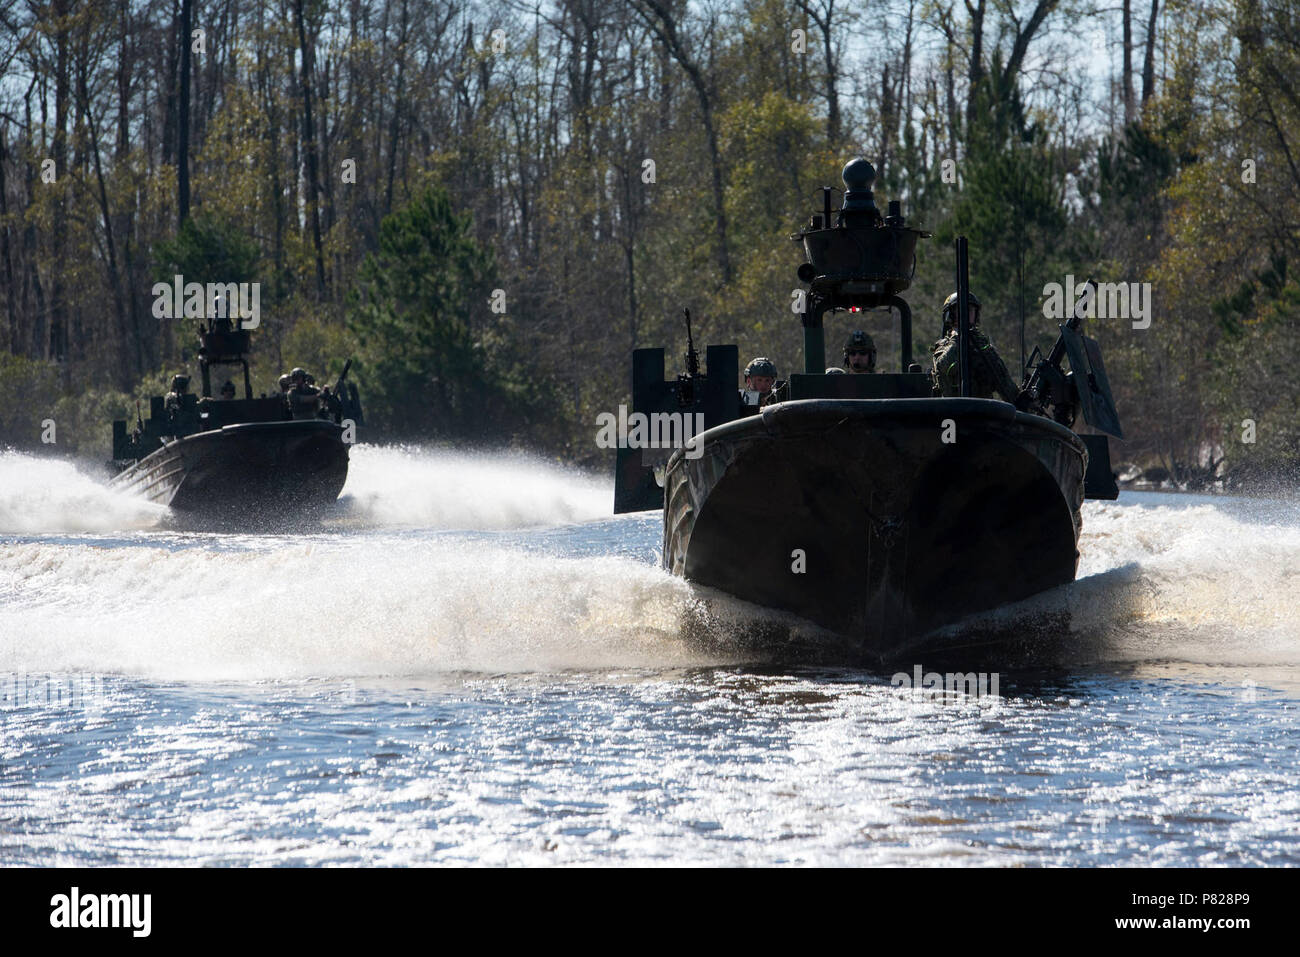 Navy Swcc Stock Photos & Navy Swcc Stock Images - Page 3 - Alamy